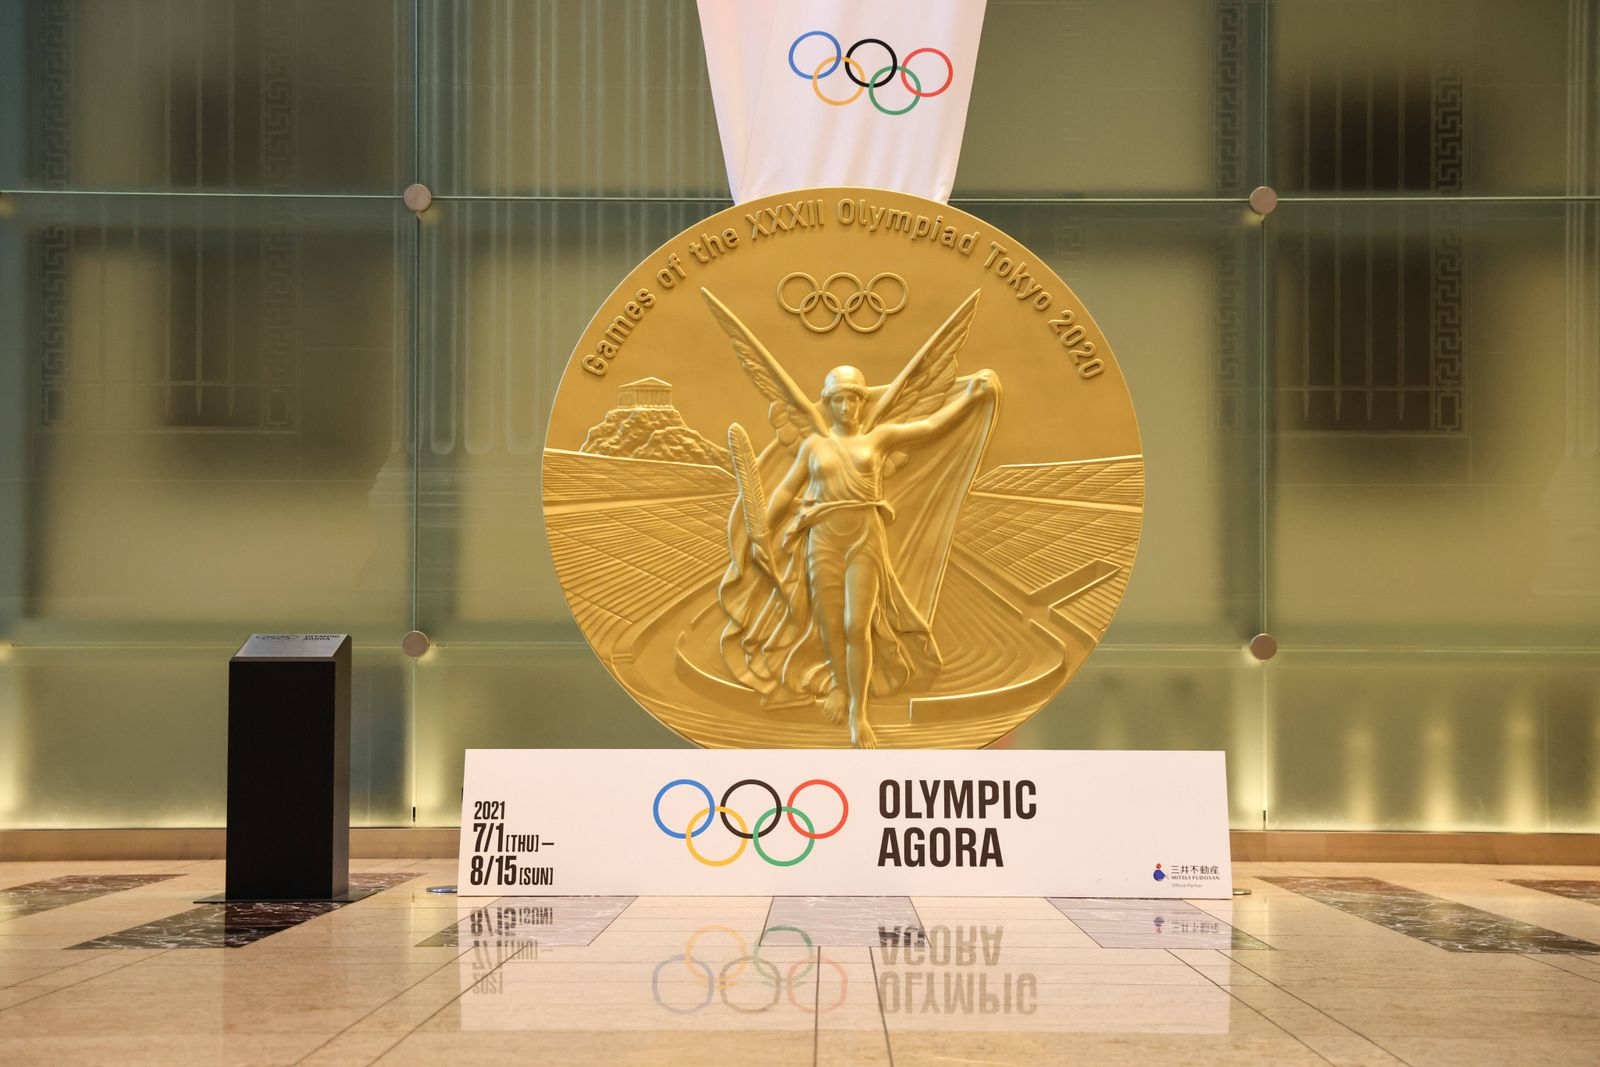 July 21, 2021, Tokyo, Japan: Large-scale reproduction of Tokyo 2020 Gold Medal on display at the Olympic Agora..The Oly